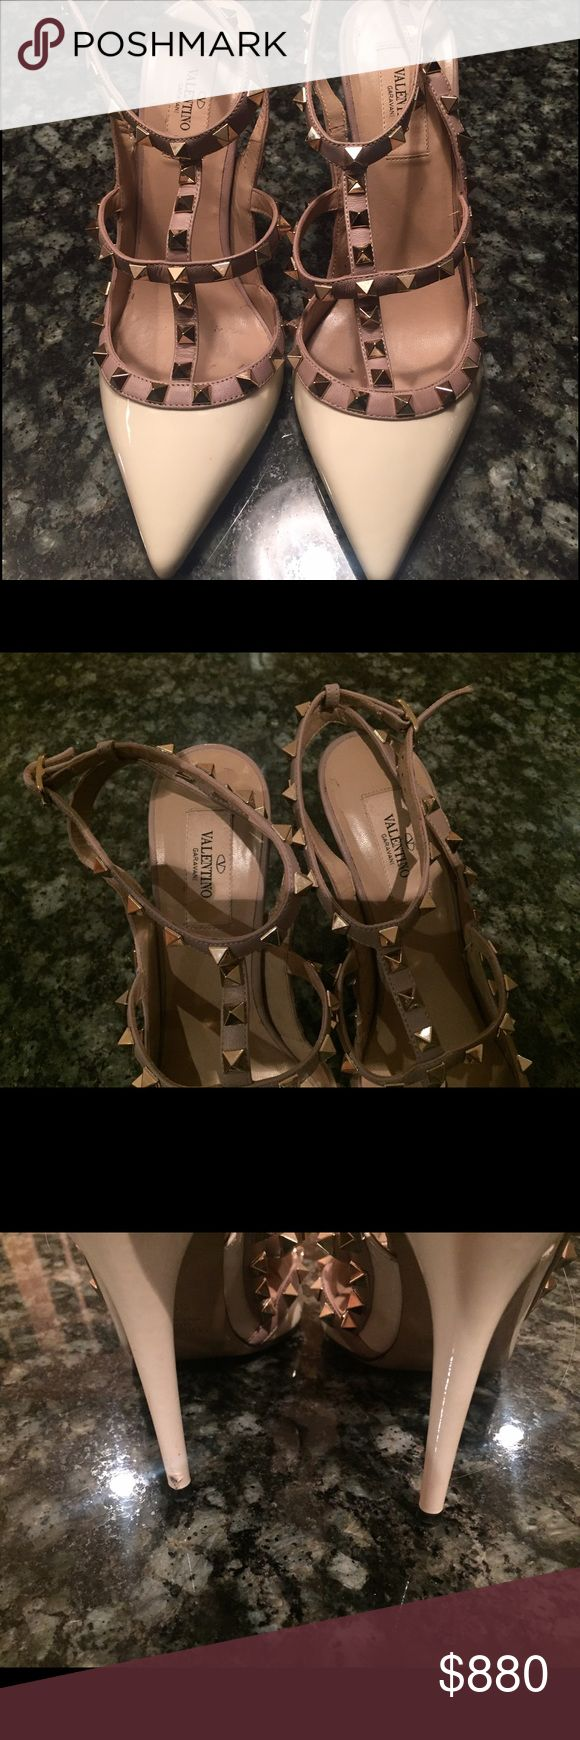 Valentino Rockstud White 39.5 Amazing white rockstuds. PP only. Negotiable on price within reason. Valentino Shoes Heels